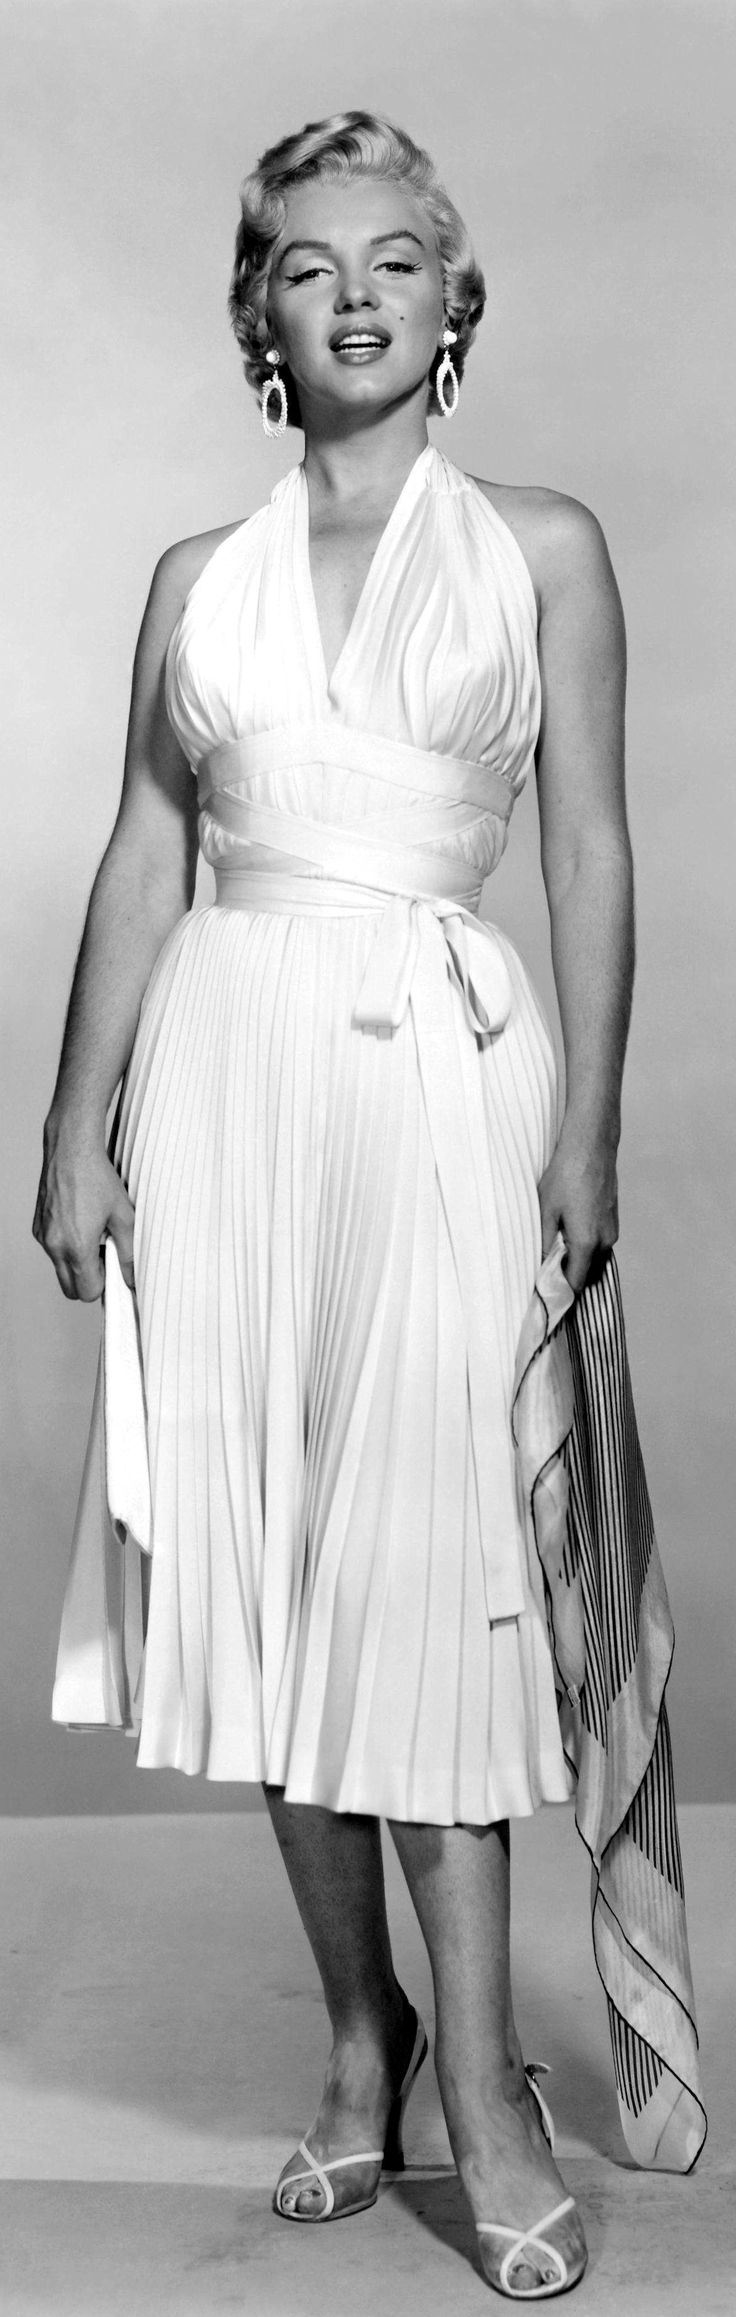 50s white halter sundress iconic MM dress cocktail Marilyn Monroe, in William Travilla, 1955, The Seven Year Itch, Iconic dress